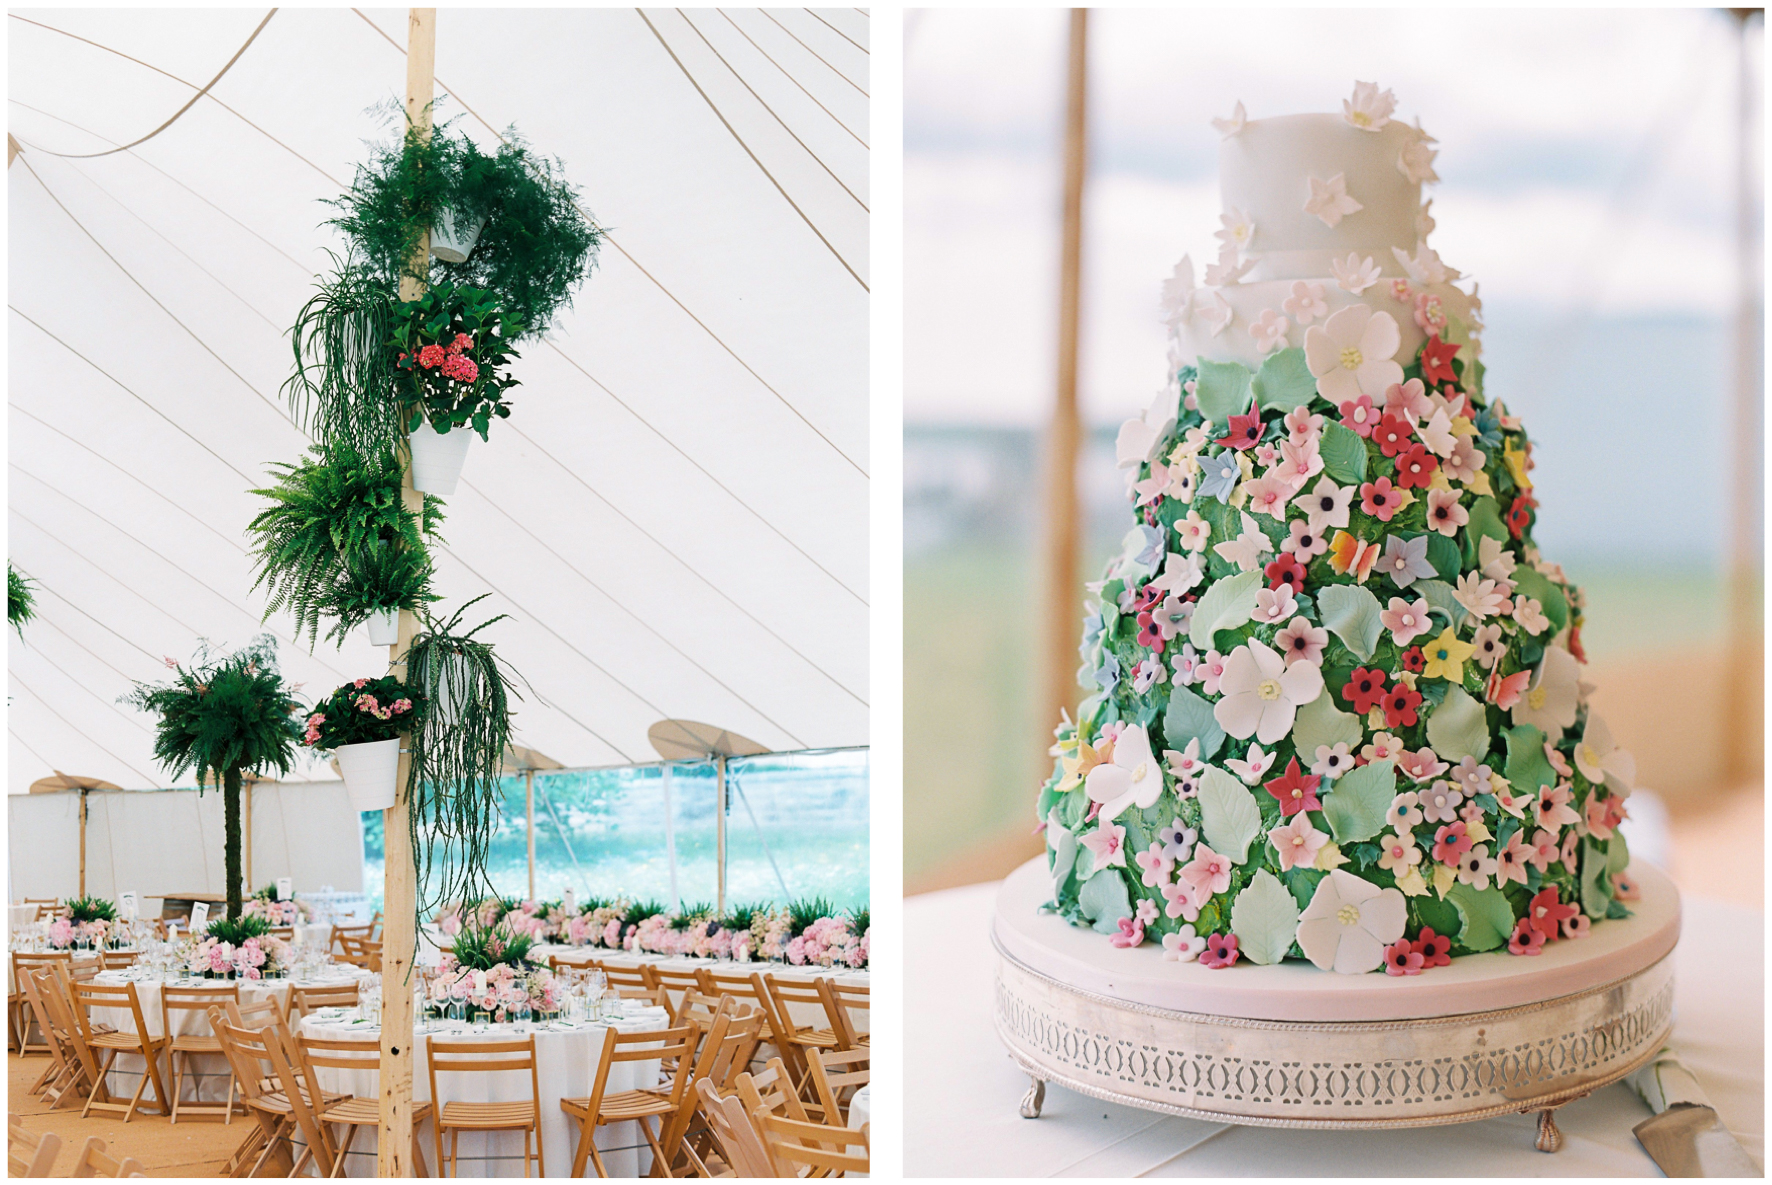 glamping wedding, Lucy Davenport Photography, home wedding, Sperry tent, PapaKata, ferns, greenery, cake, wedding cake